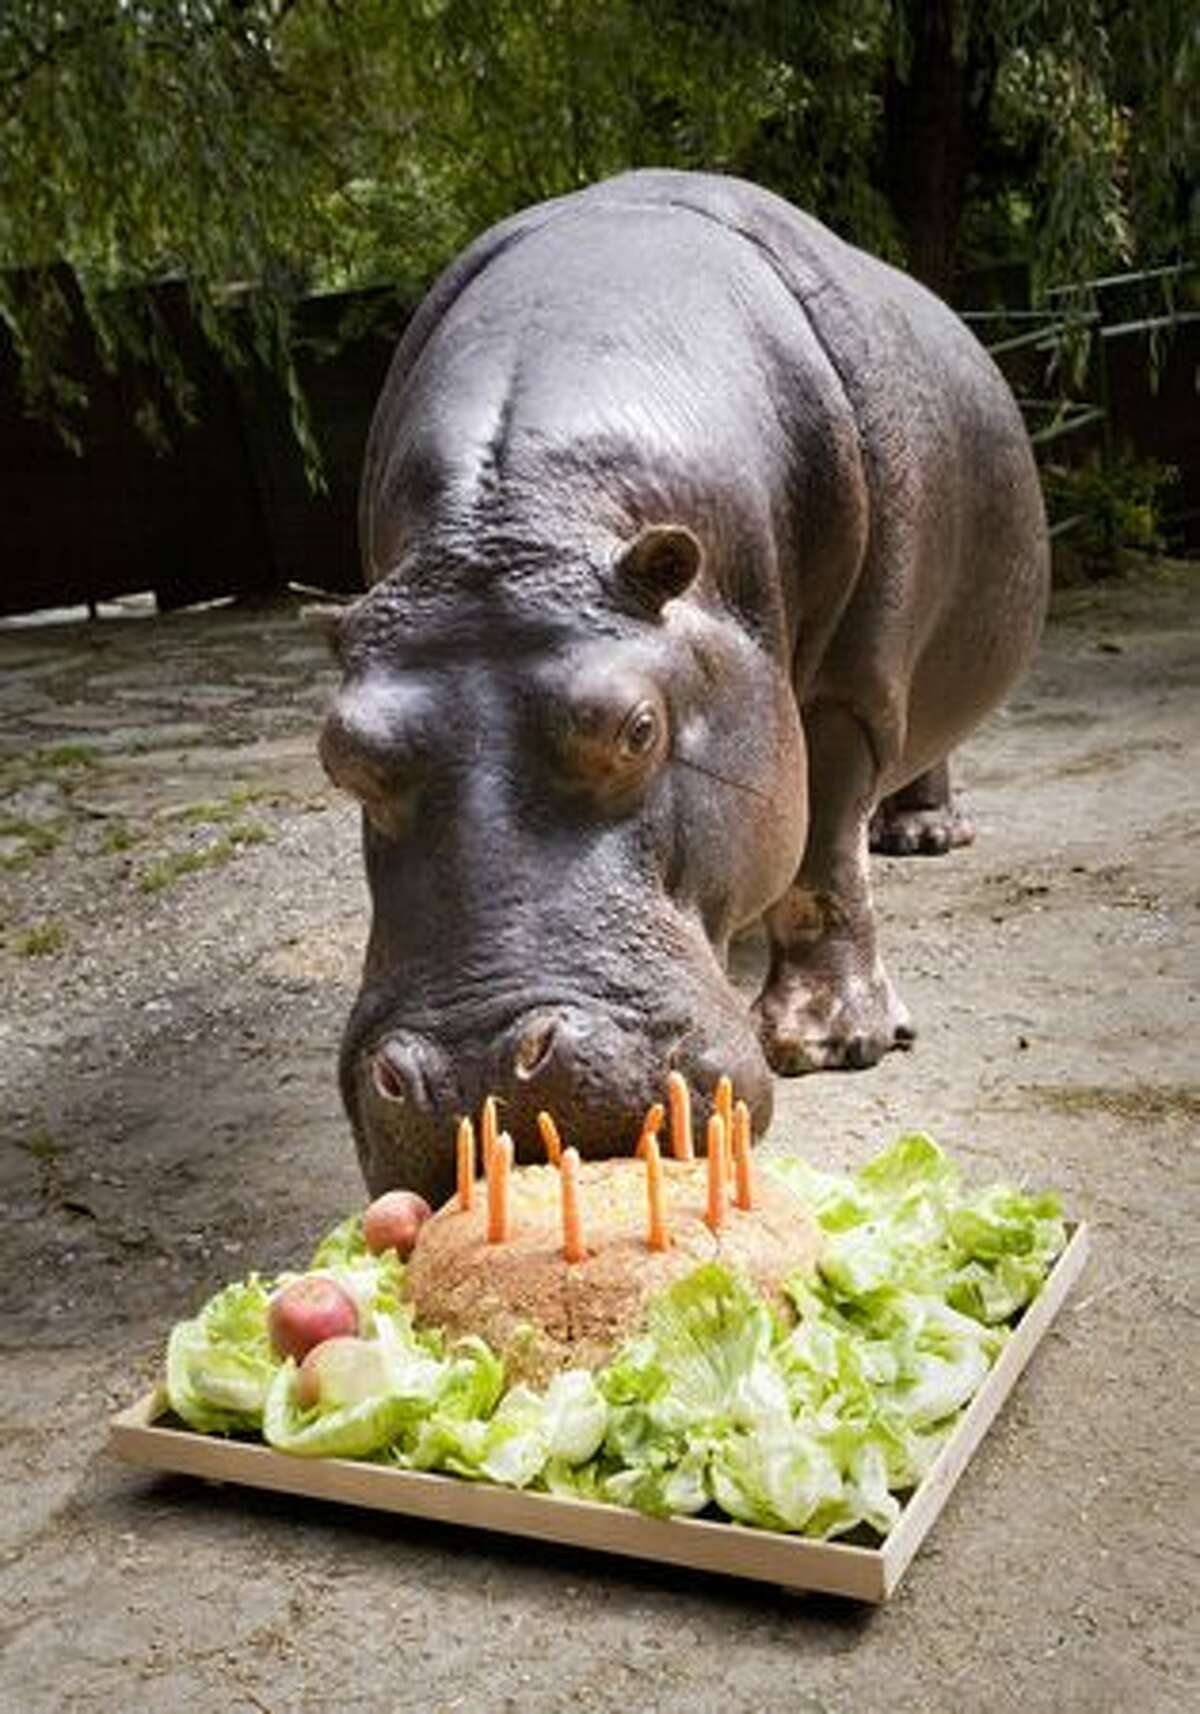 Female hippopotamus 'Tana' enjoys her 50th birthday cake made of salad, carrots and concentrated feed at the Opel-Zoo in Kronberg near Frankfurt/M., western Germany.